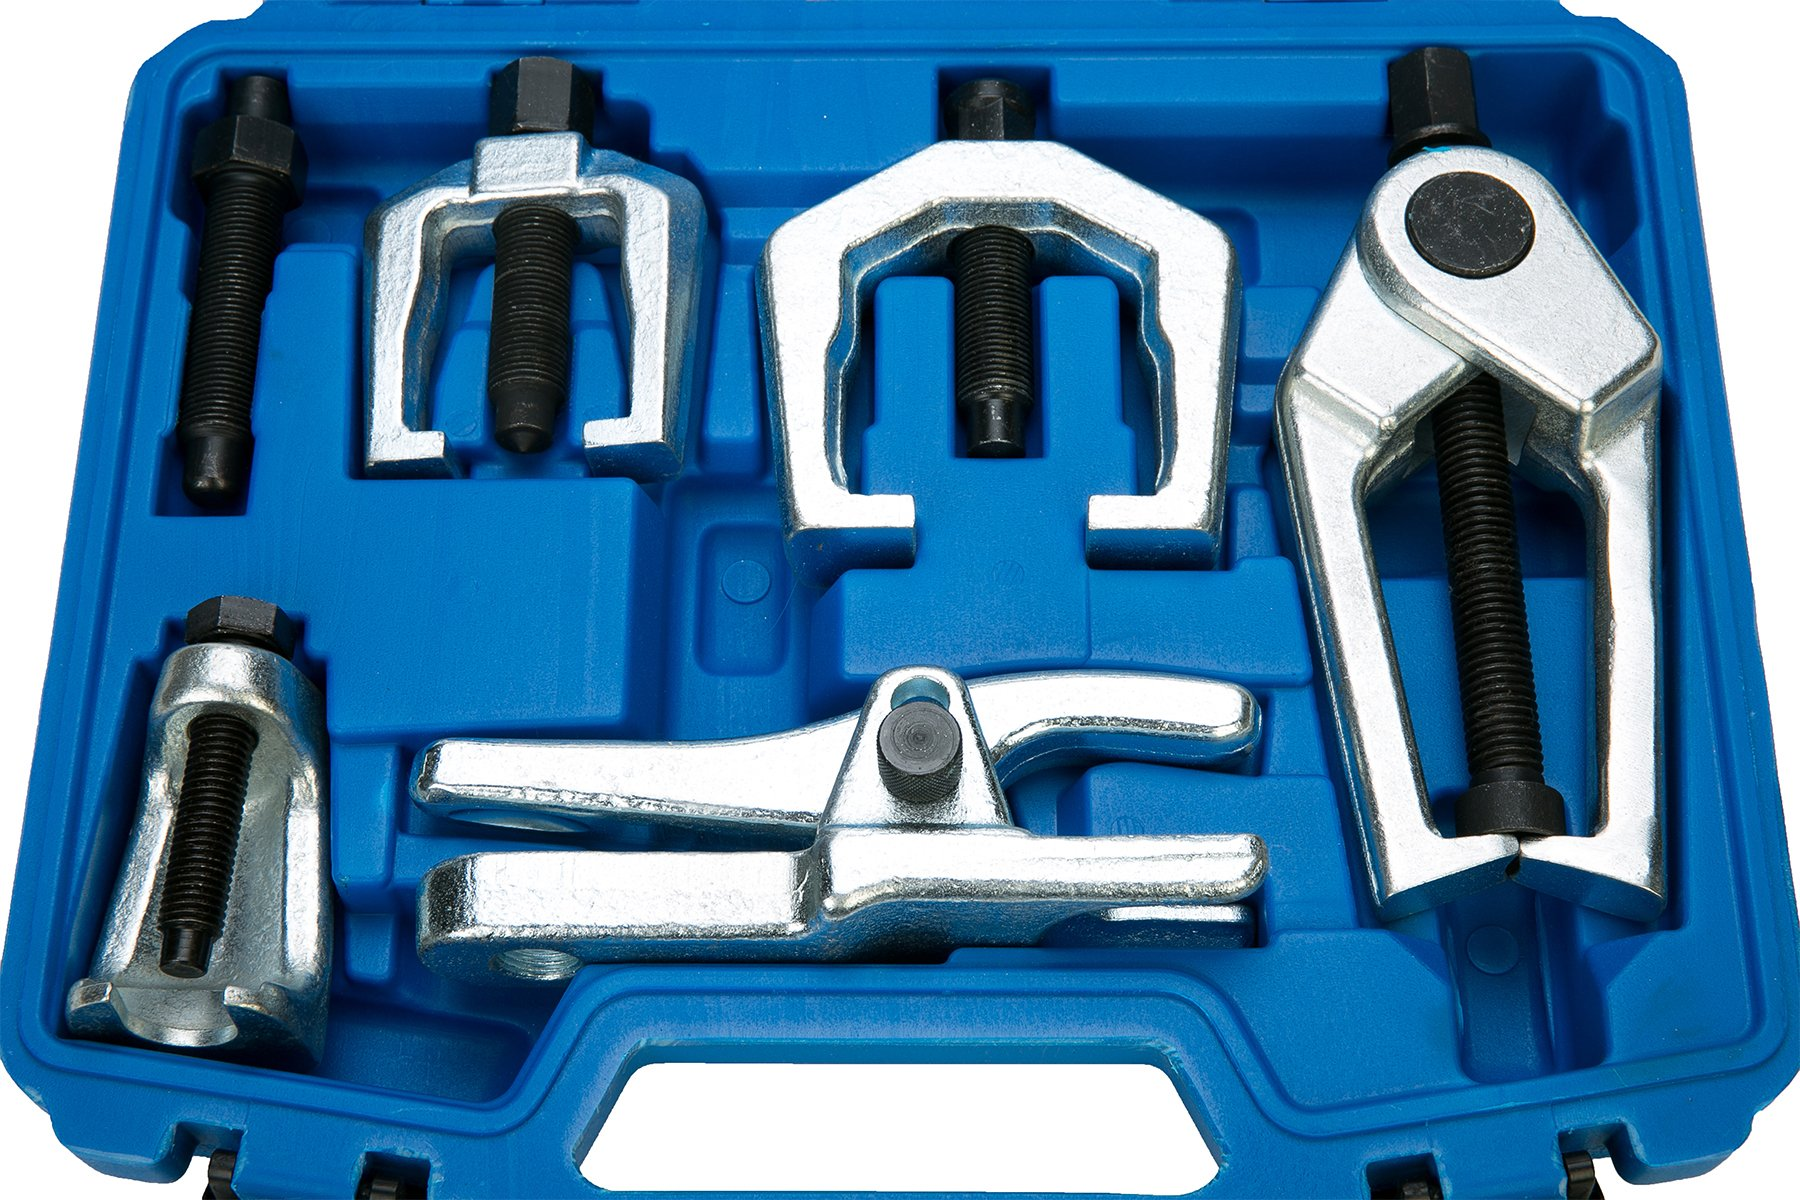 8milelake 6pc Front End Service Tool Kit Ball Joint Separator Pitman Arm Tie Rod Puller by 8MILELAKE (Image #7)